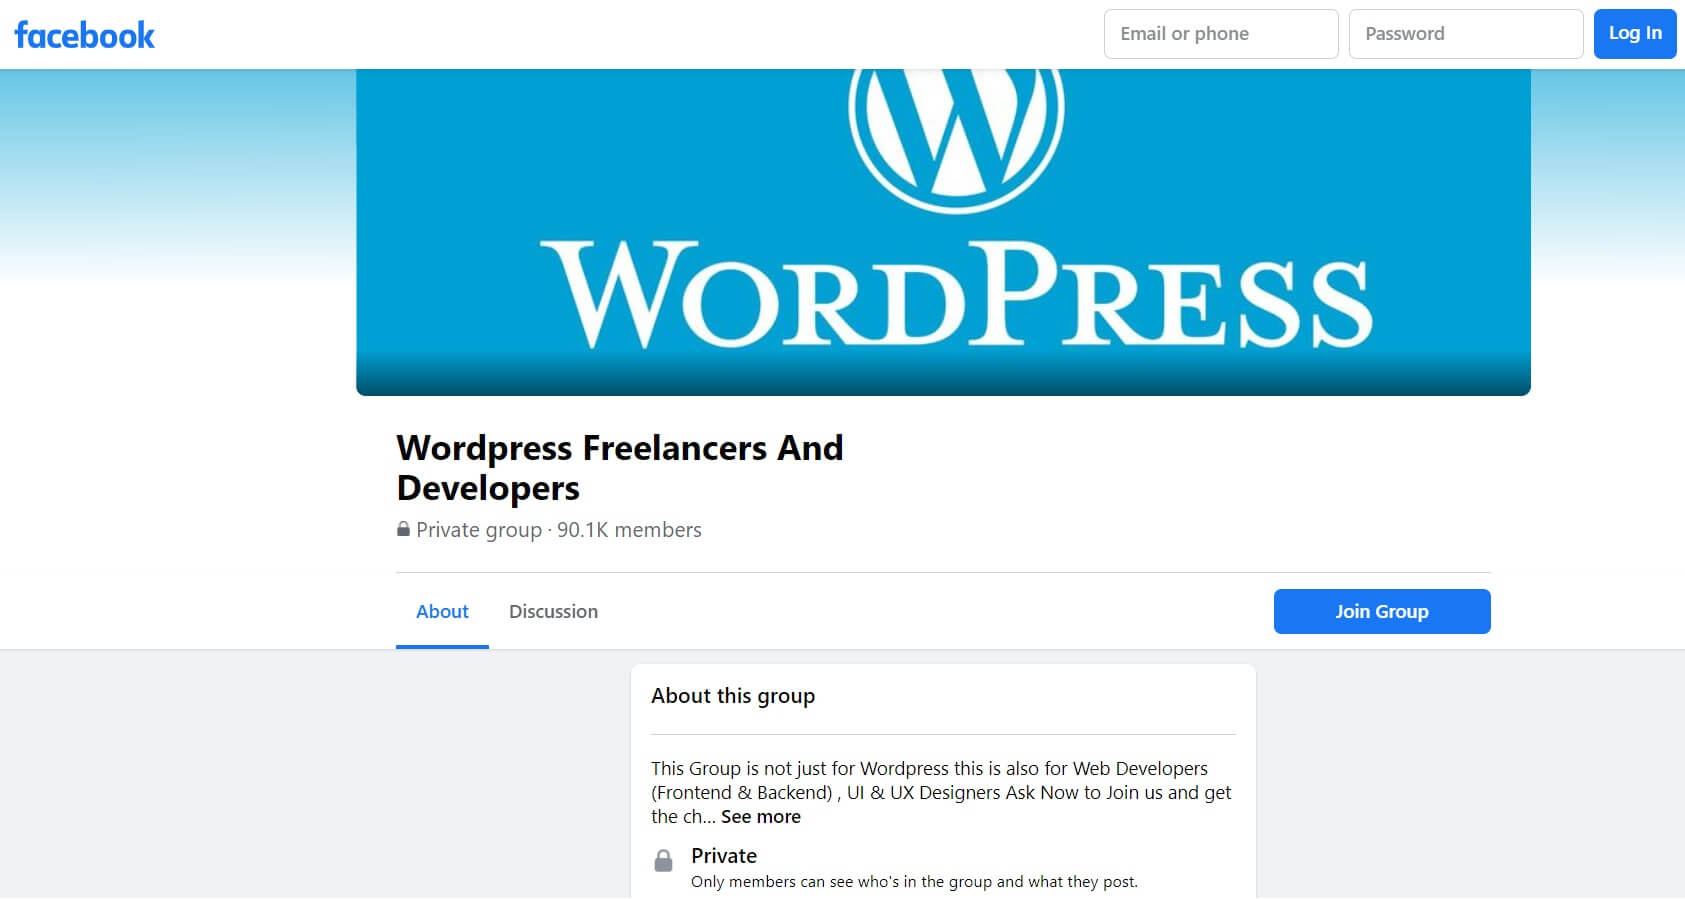 The Facebook 'WordPress Freelancers And Developers' group page